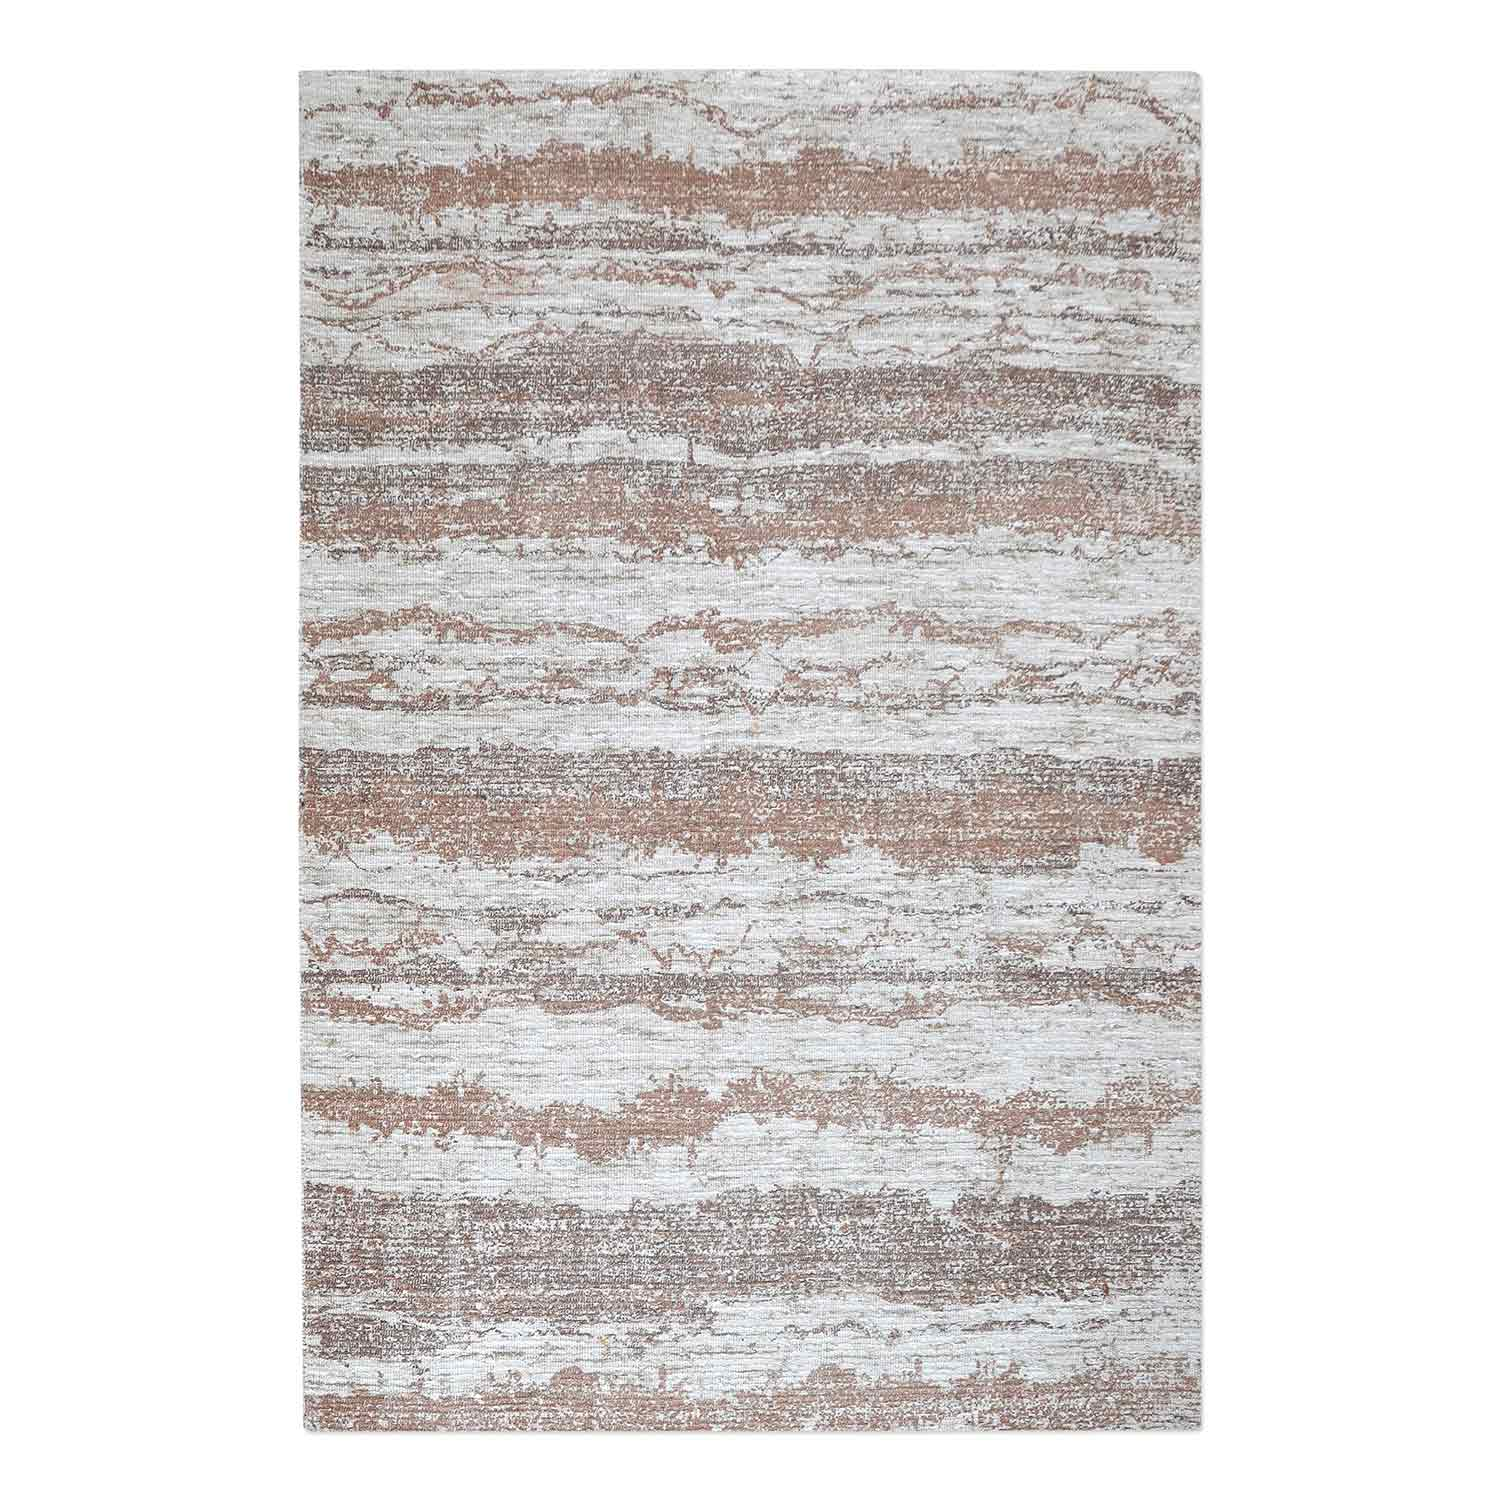 Uttermost Basilia 9 x 12 Rug - Brown